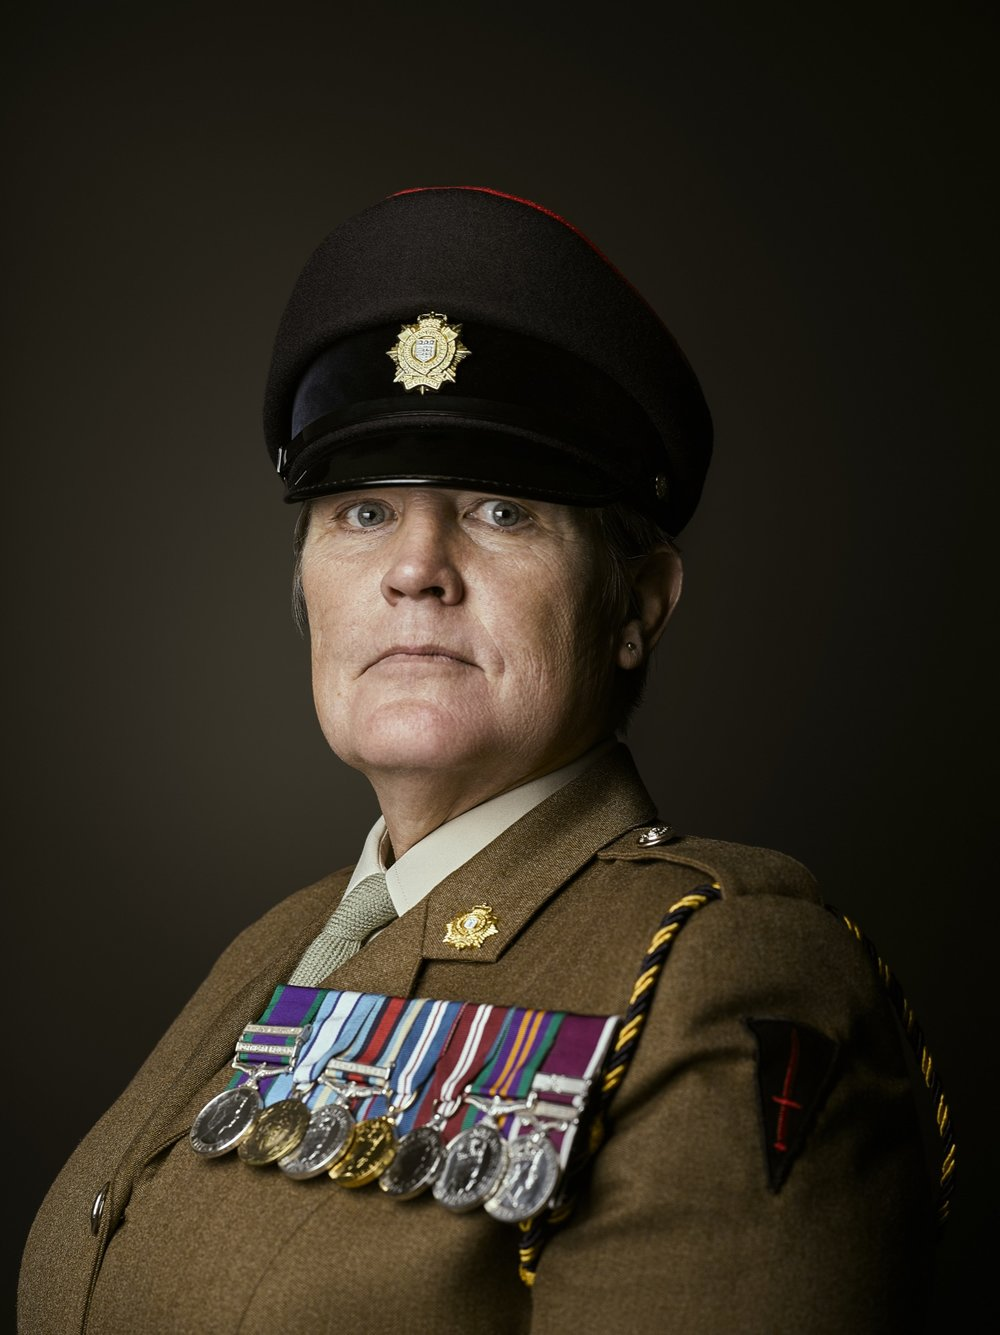 Warrant Officer Class 2 Deborah Penny (Rory Lewis Photographer 2018)